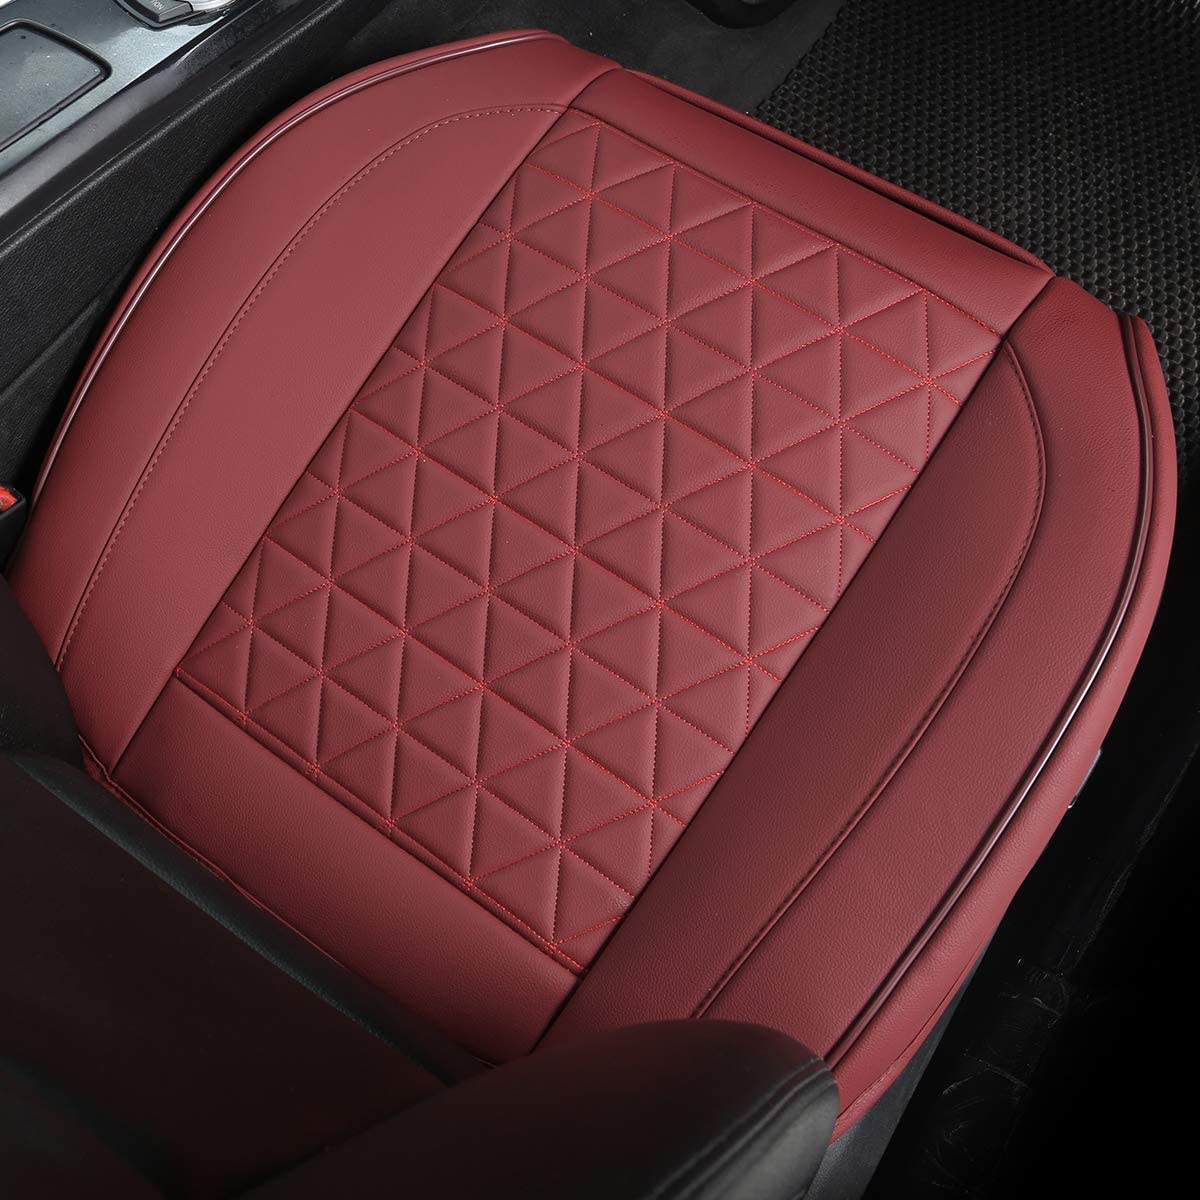 21.26/×20.86 Inches Black Panther 1 Pair Luxury PU Leather Car Seat Covers Protectors for Front Seat Bottoms,Compatible with 90/% Vehicles - Wine Red,Triangle Pattern Sedan SUV Truck Van MPV